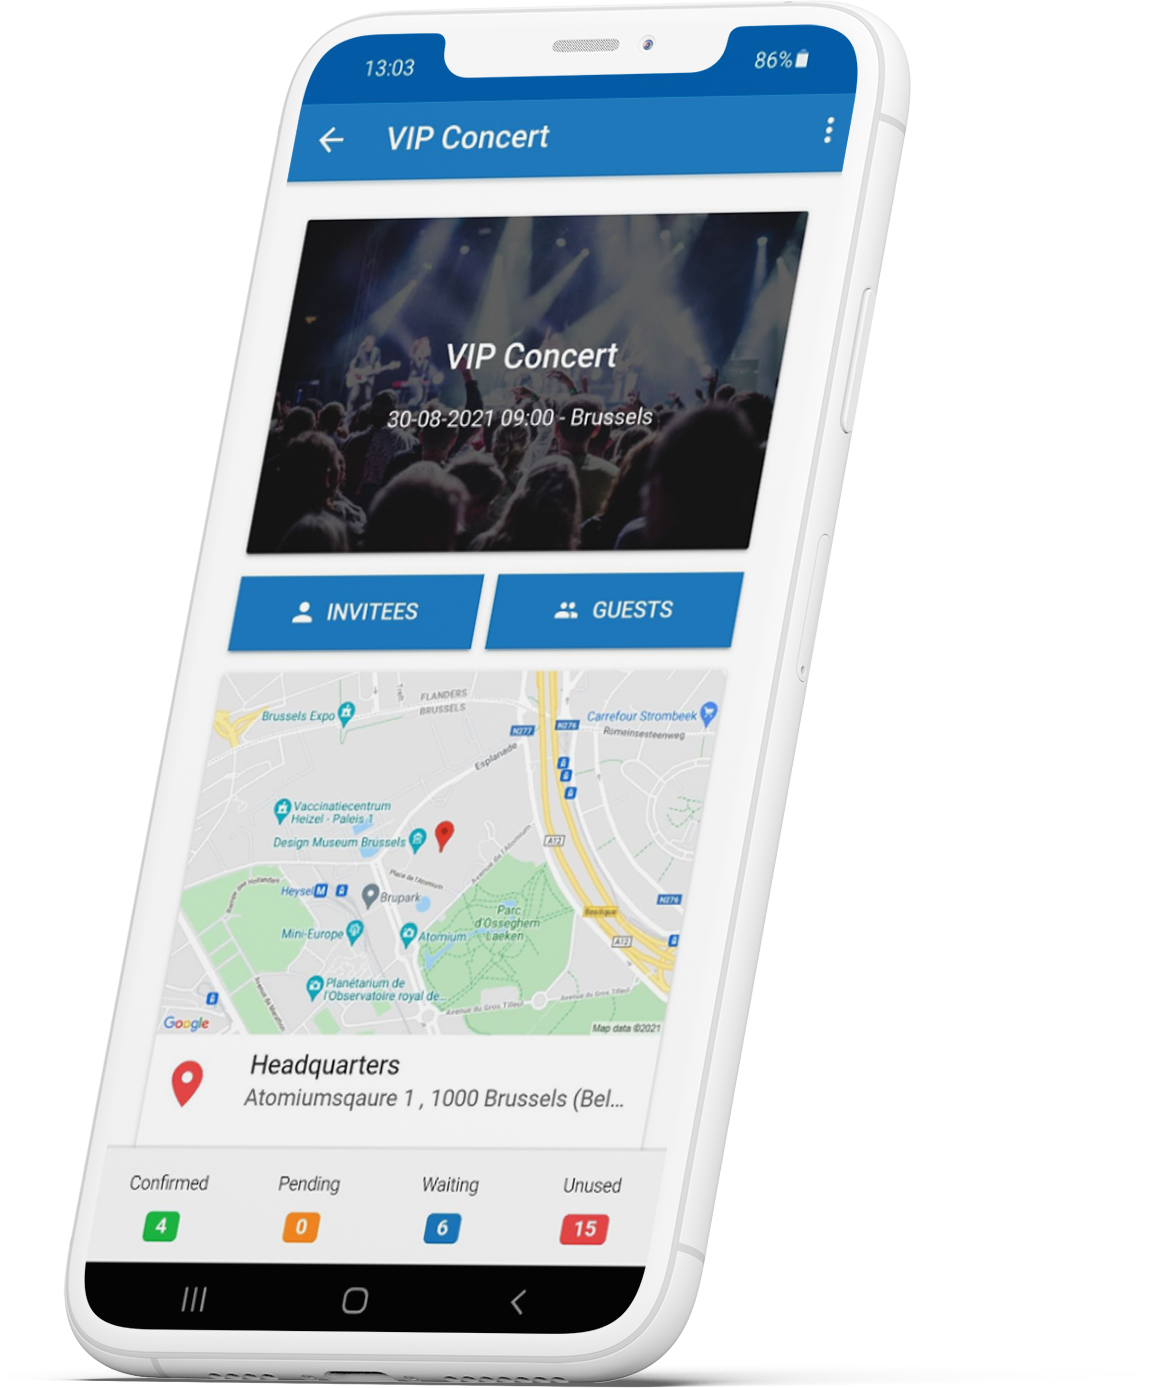 InviteDesk manage events